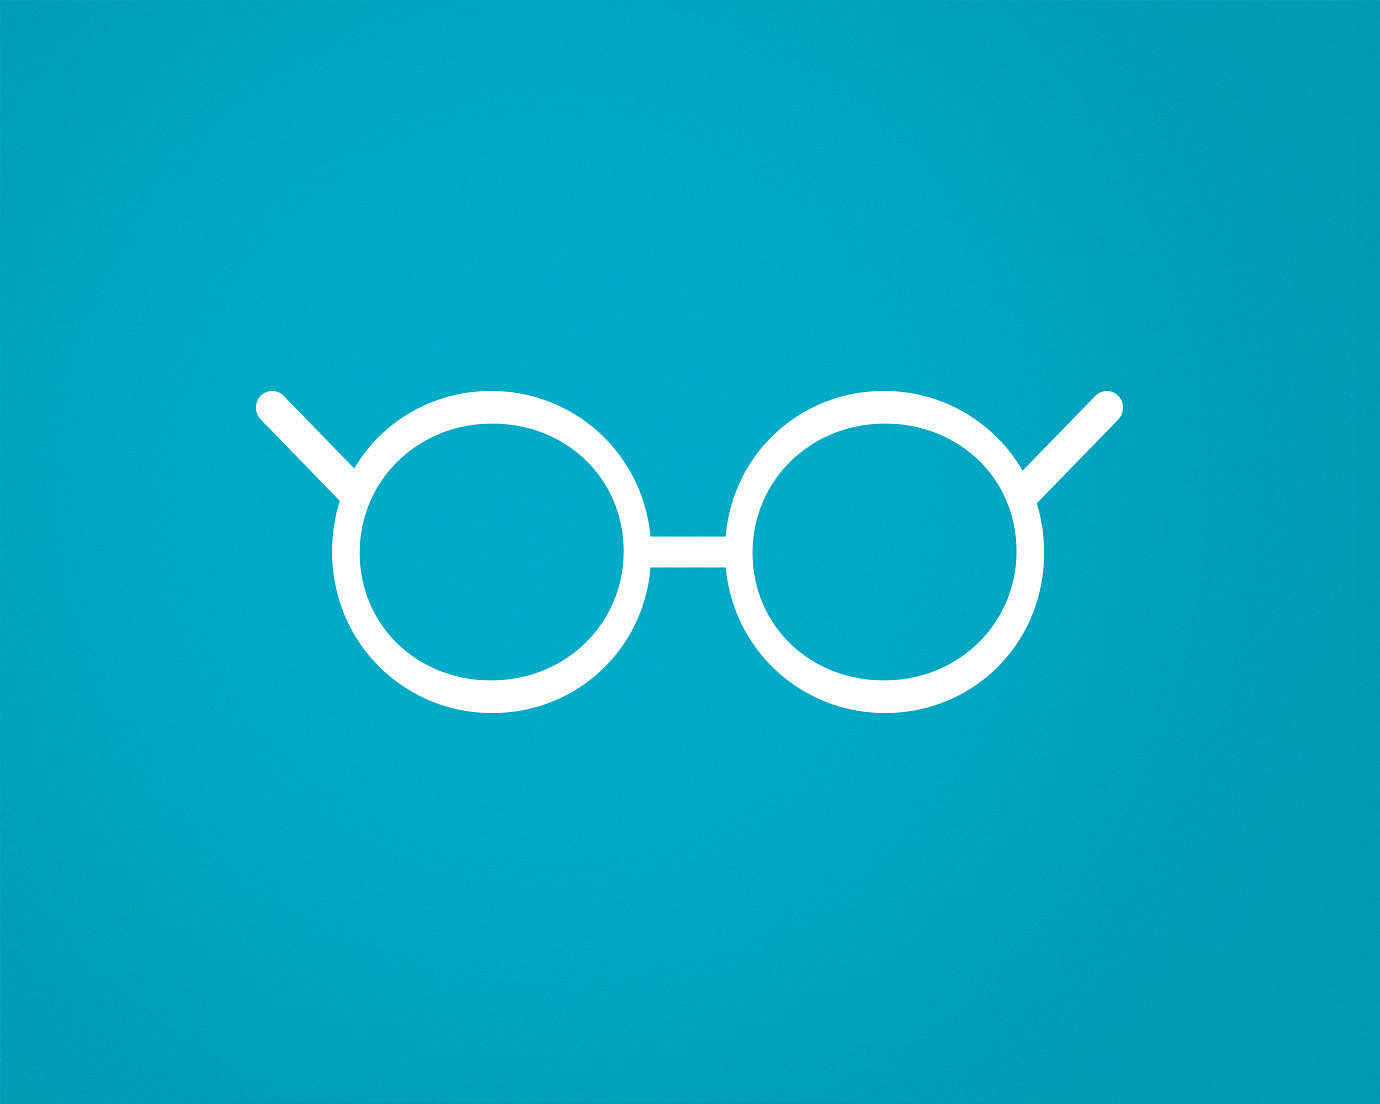 optometrist-logo-blue